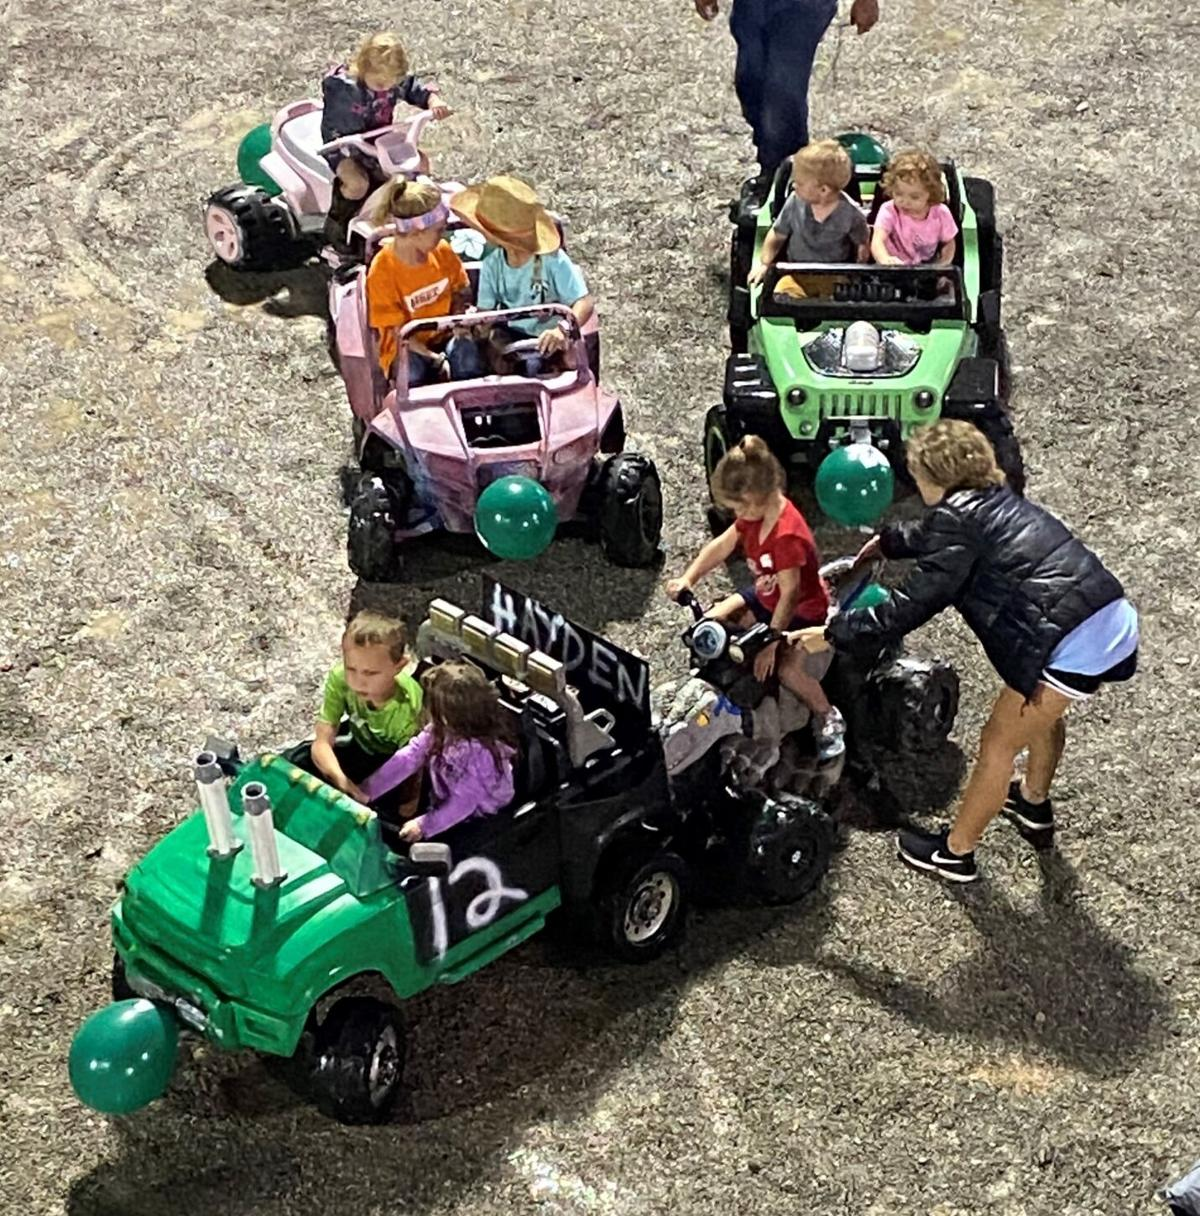 Grownups helped to clear tangled traffic during the Kids Power Wheels Derby on Saturday at the 96th Annual Dickson County Fair.